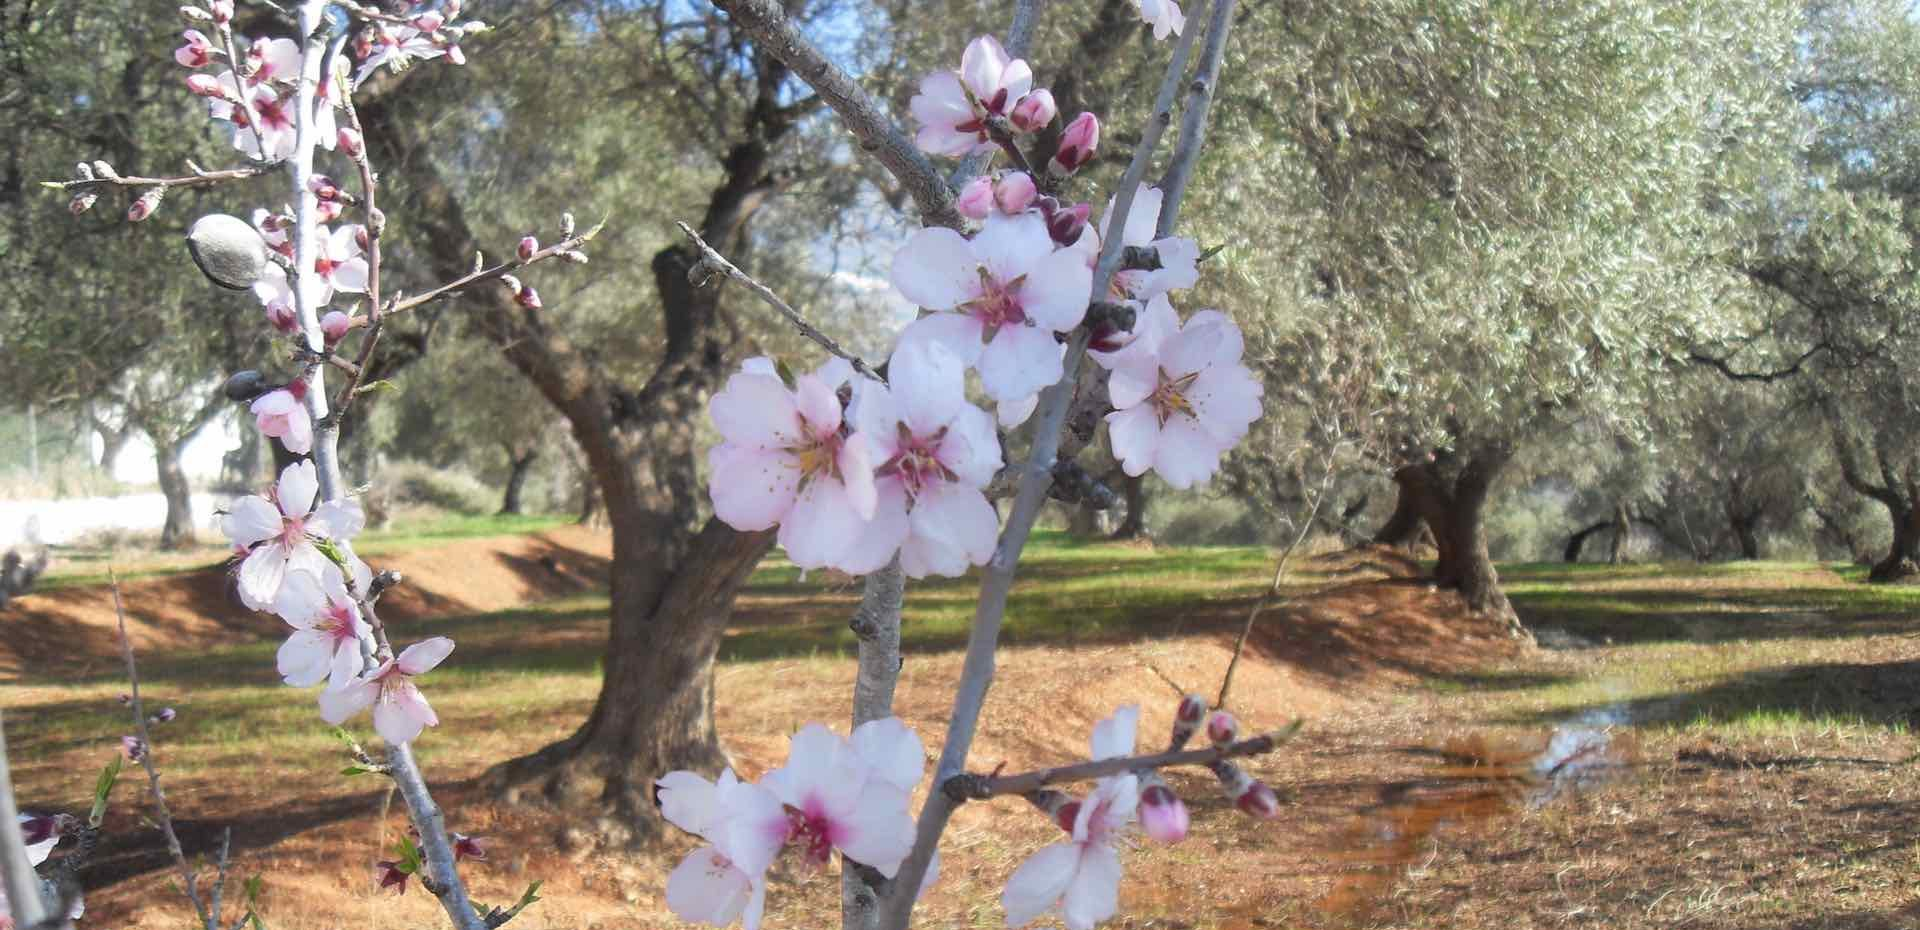 Almond blossom at Almond Hill House, Andalucia, Spain